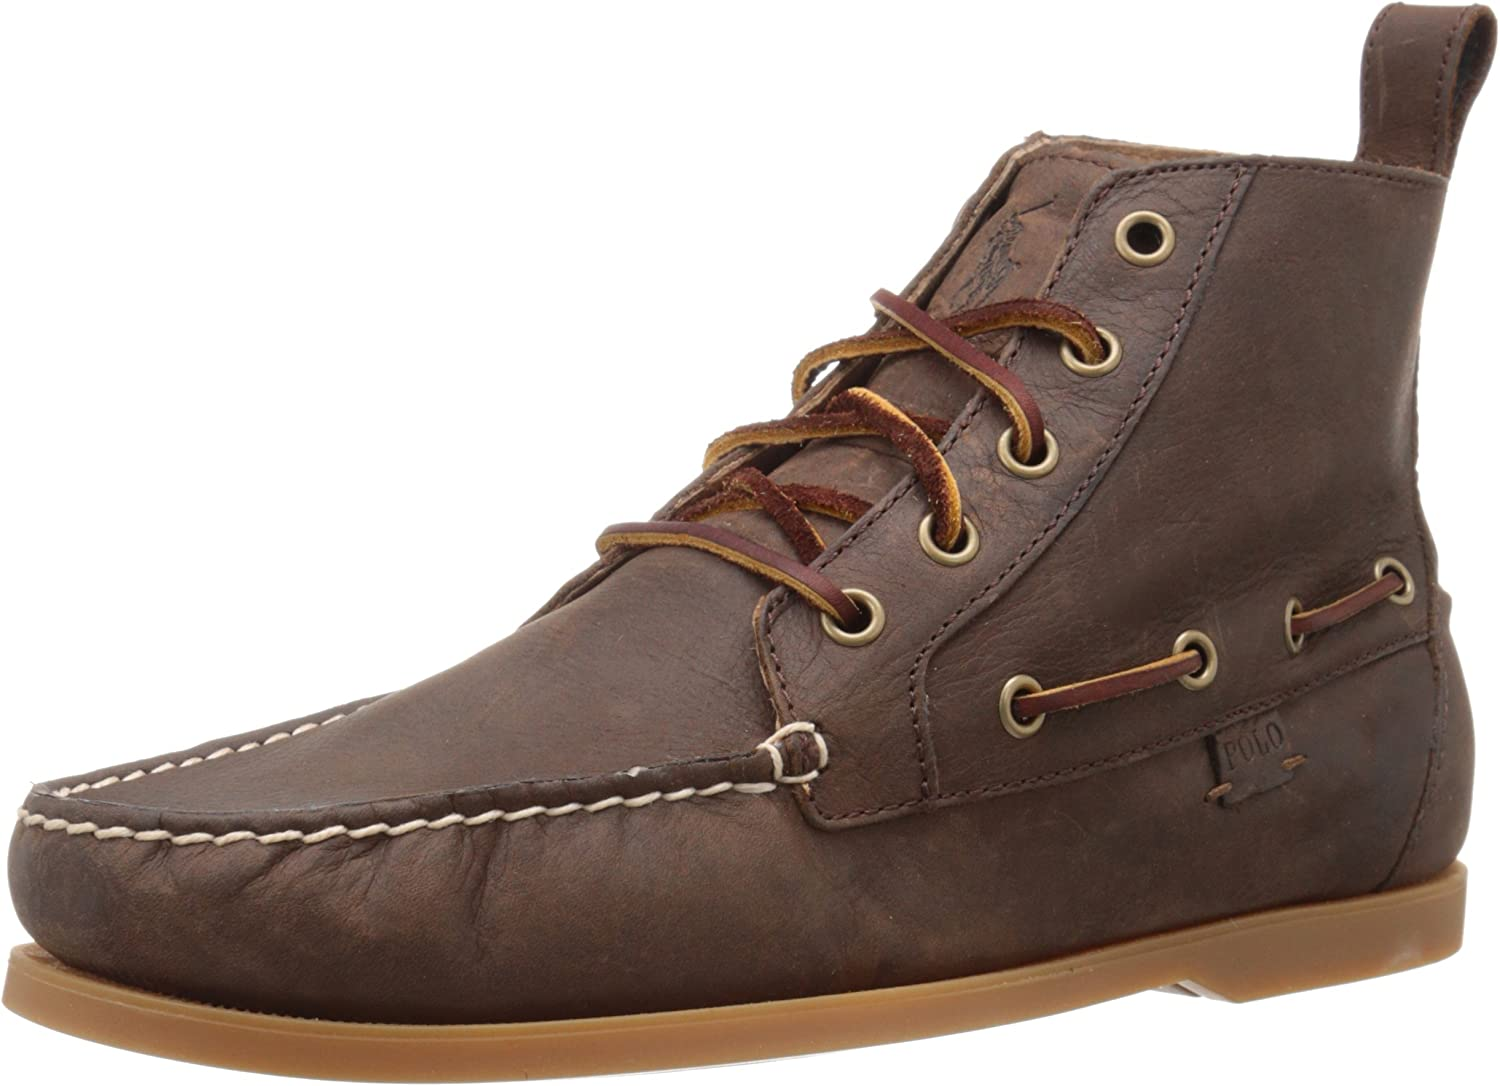 POLO RALPH LAUREN Men's Barredt Oxford, Dark Brown